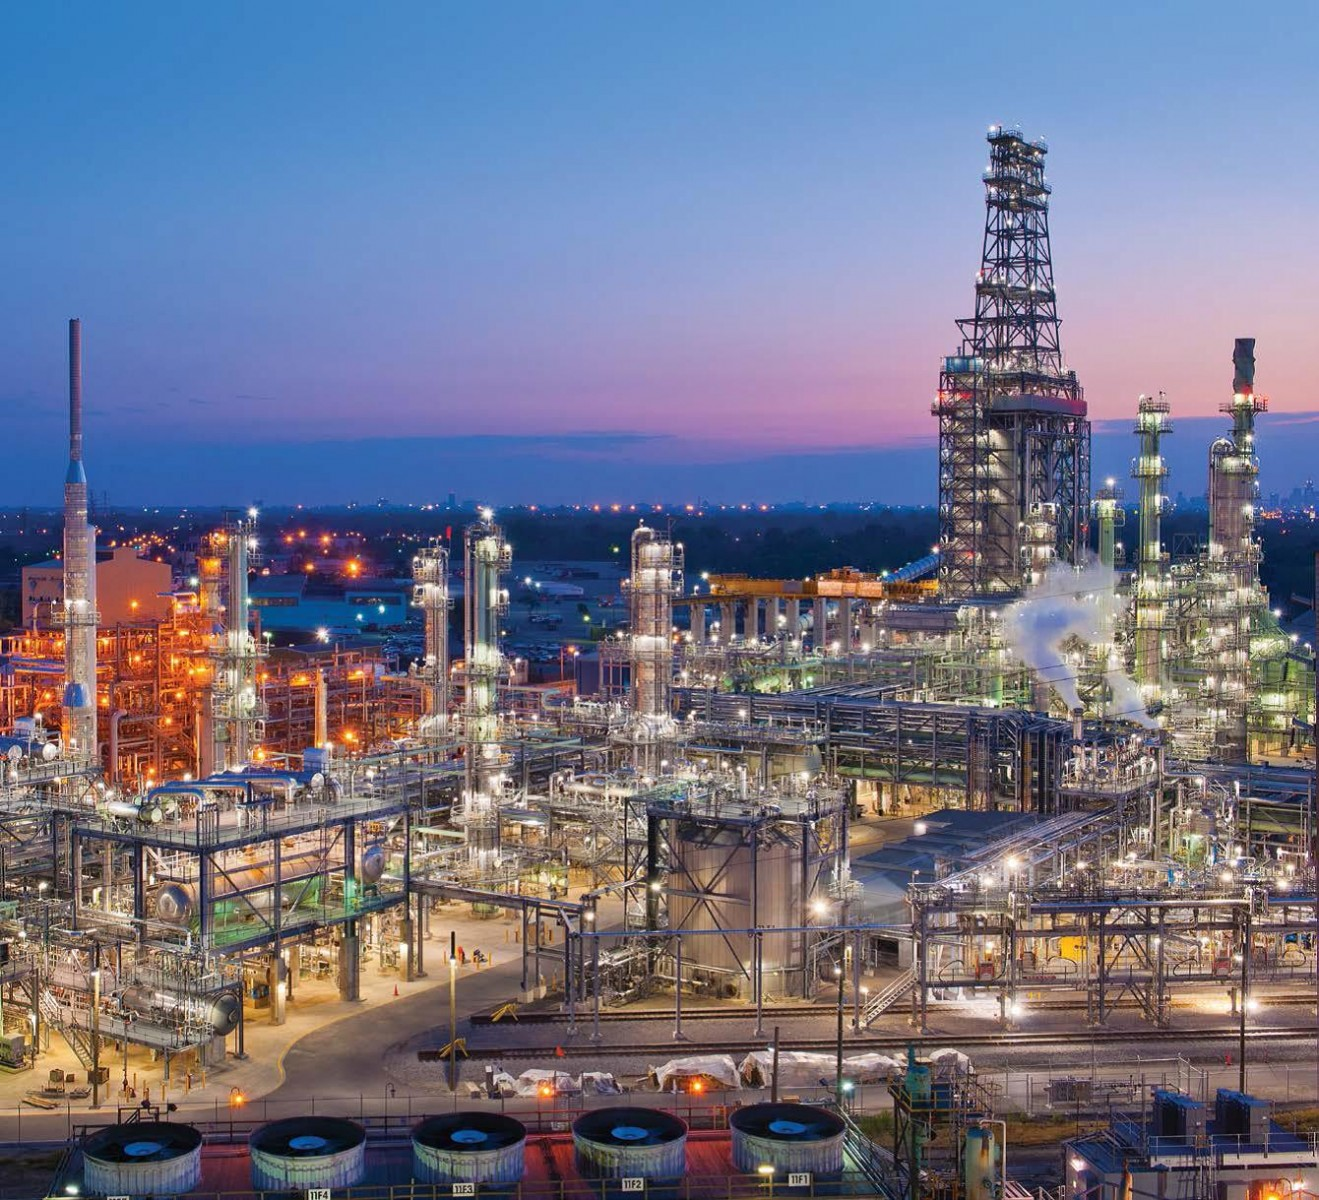 MPC's refinery in Detroit, Michigan, is implementing several pollution-control measures.